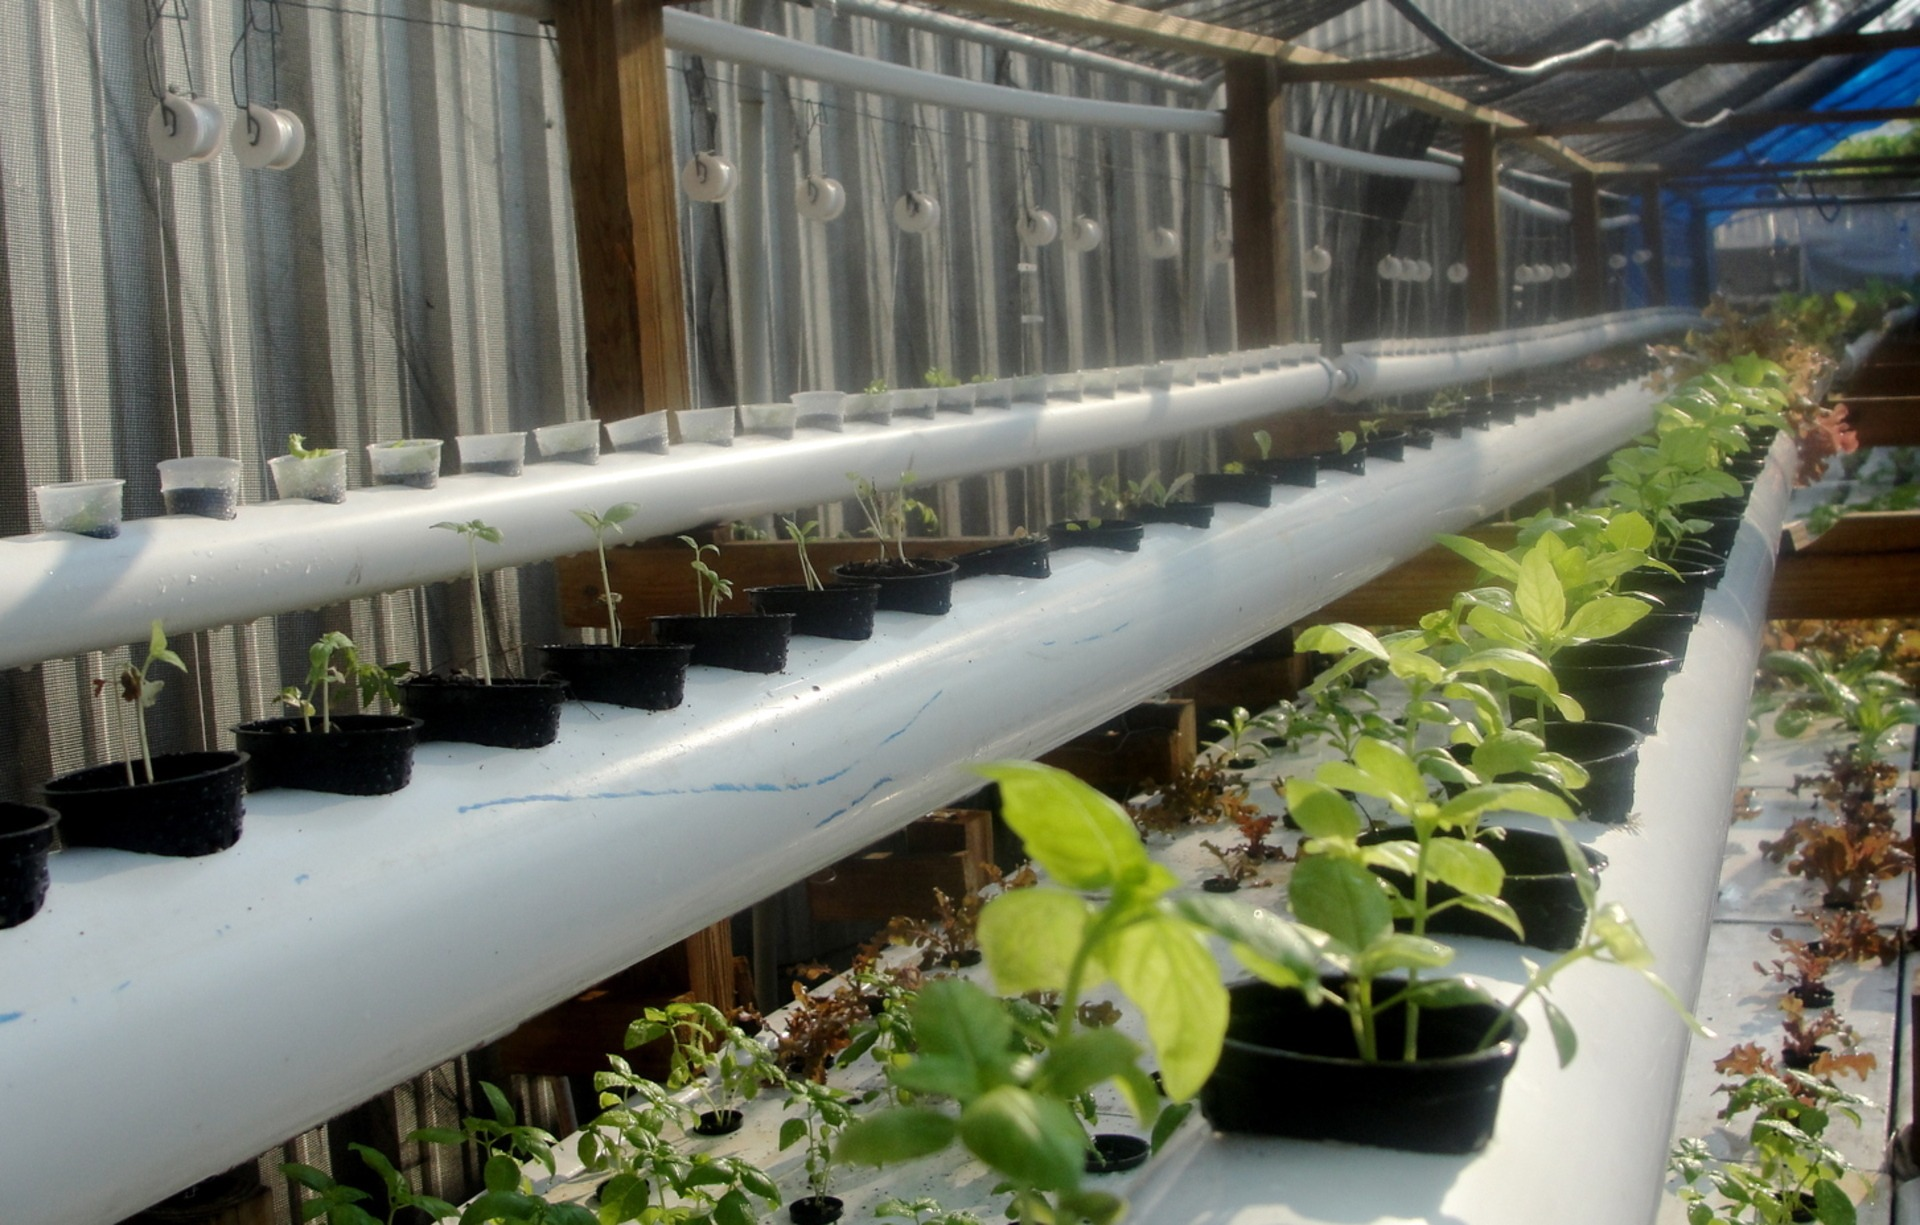 Recirculating Farms, Hydroponics and Aquaponics | FoodPrint